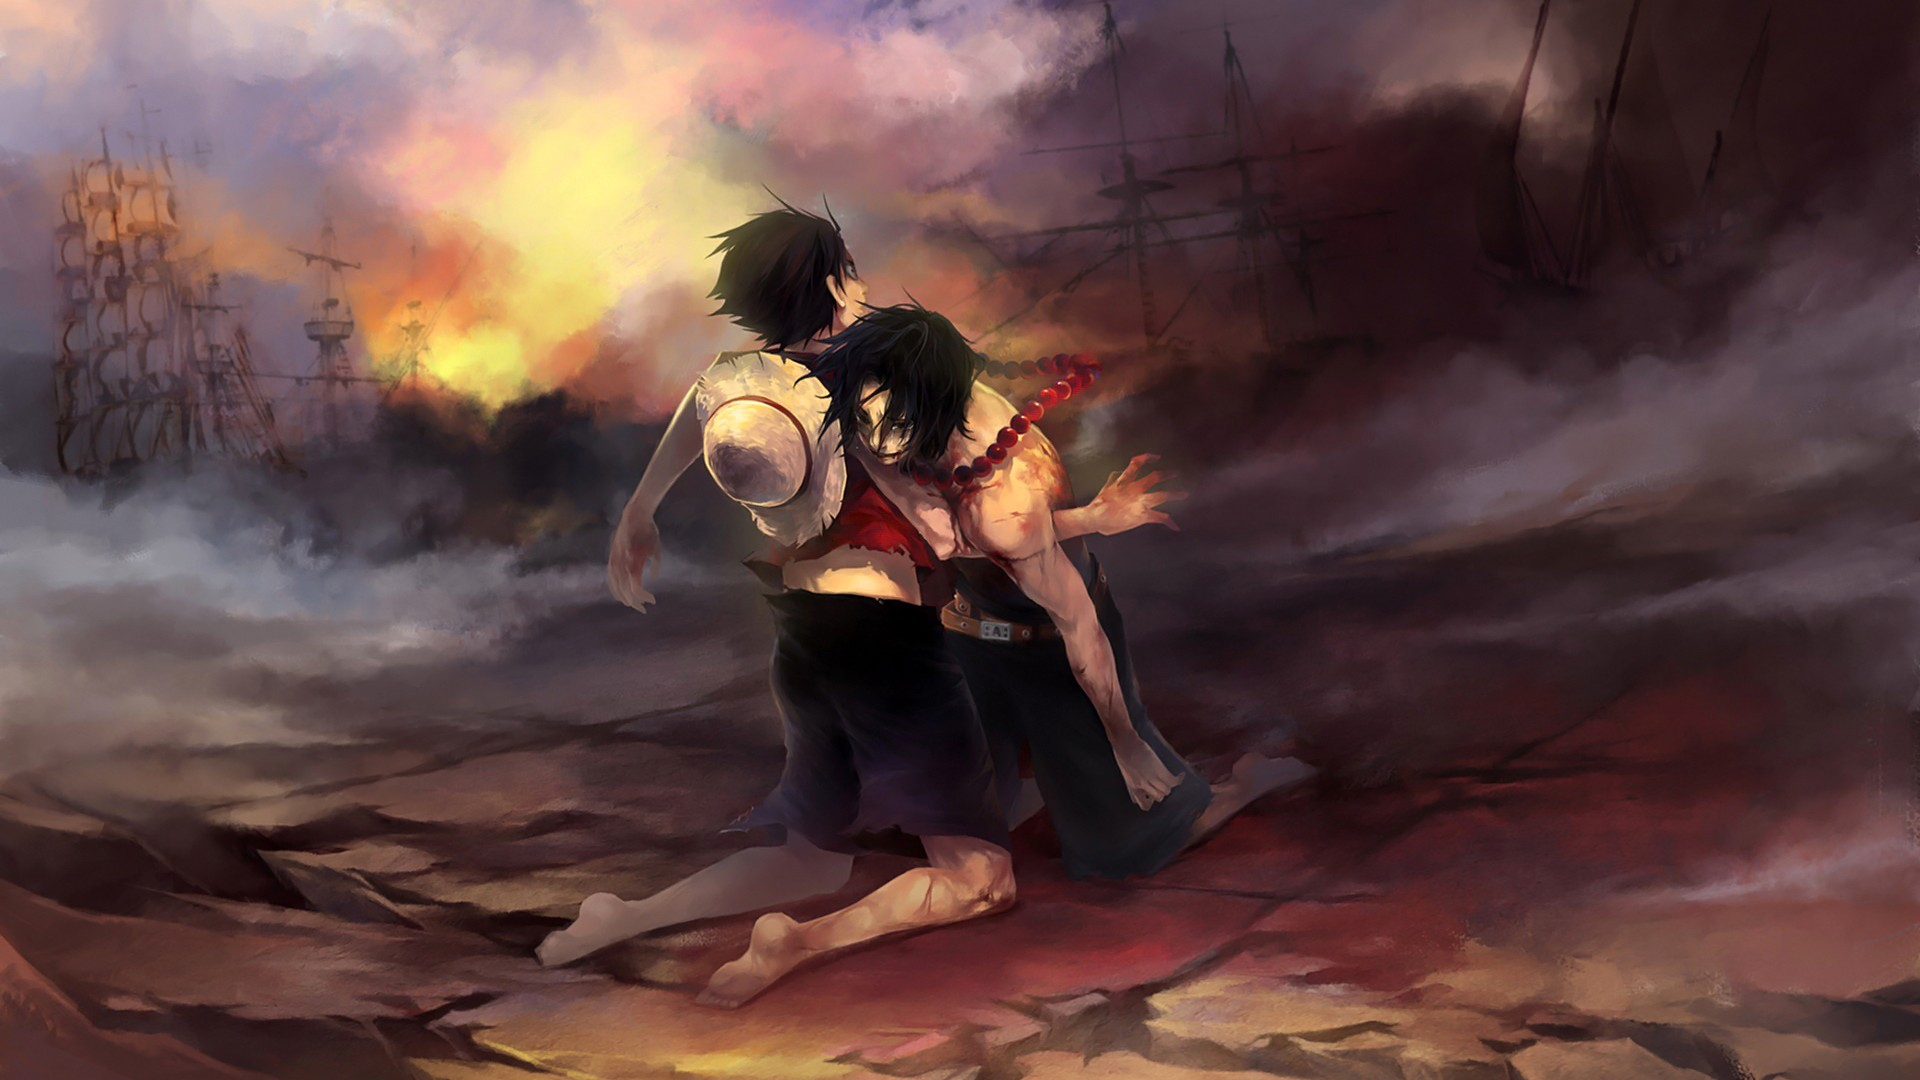 Technology is helpful until it fails. One Piece Luffy Rescue Ace HD Anime Wallpapers   HD ...